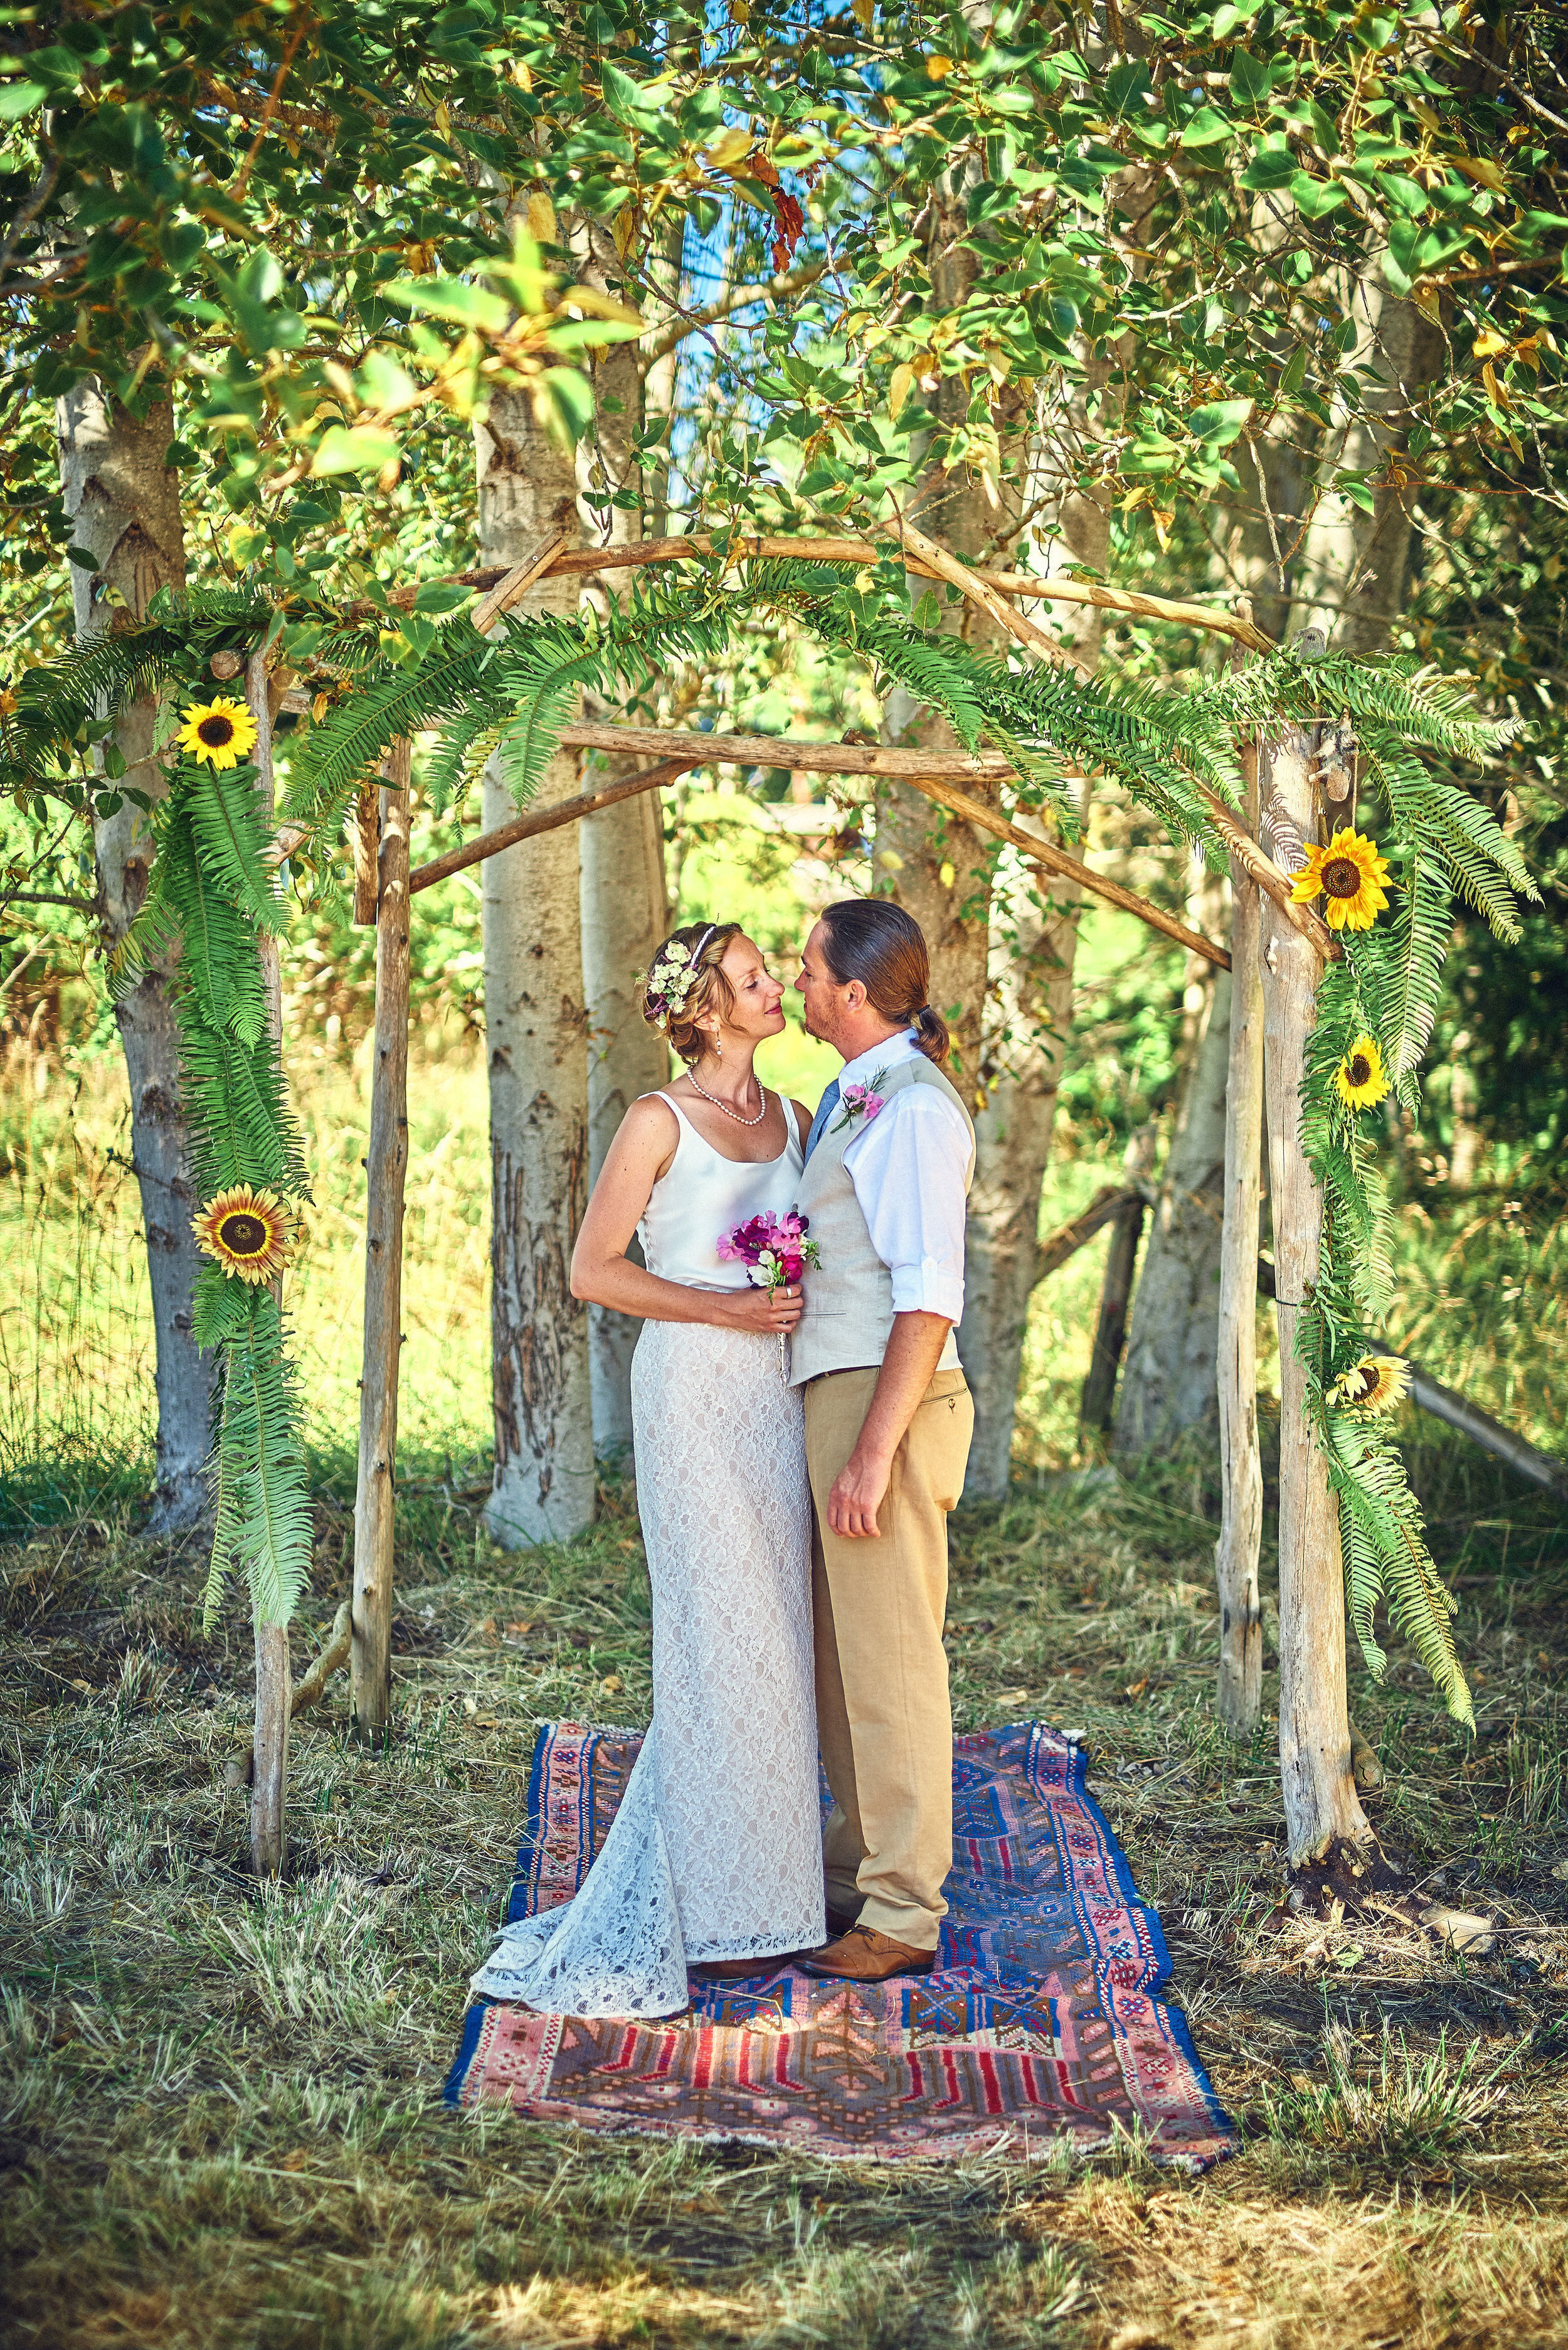 plum nelli farm wedding arbor with ferns and sunflowers and woven rug.jpg